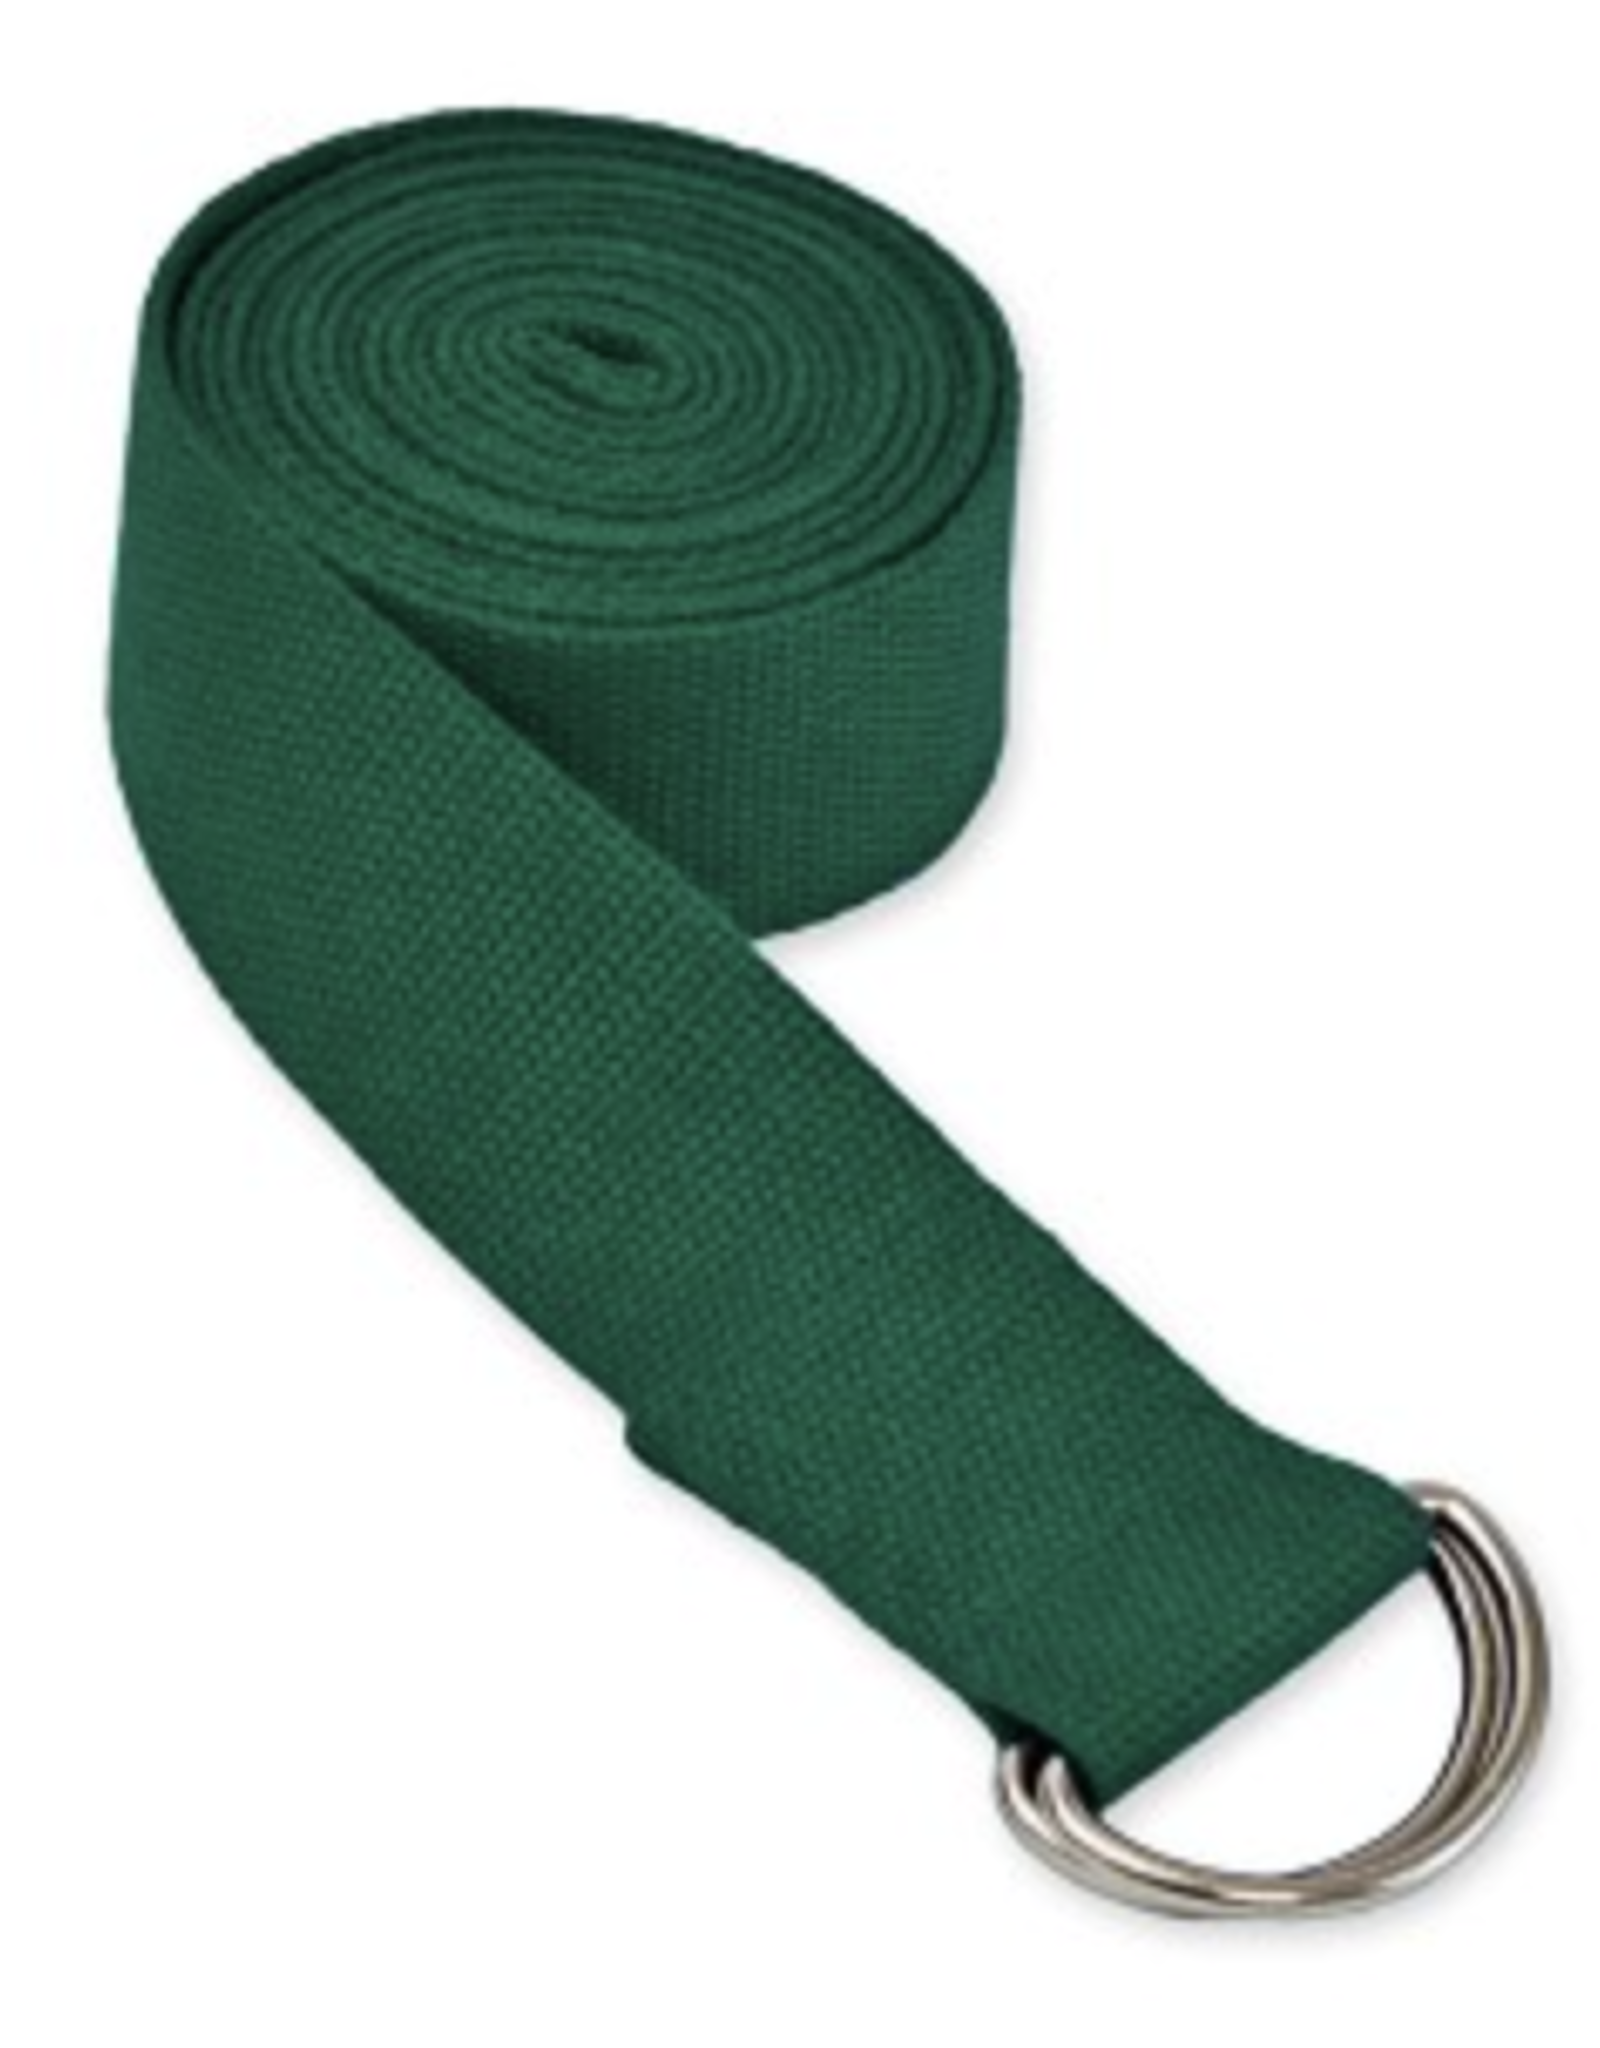 Yoga Accessories 6' D-Ring Yoga Strap - Green